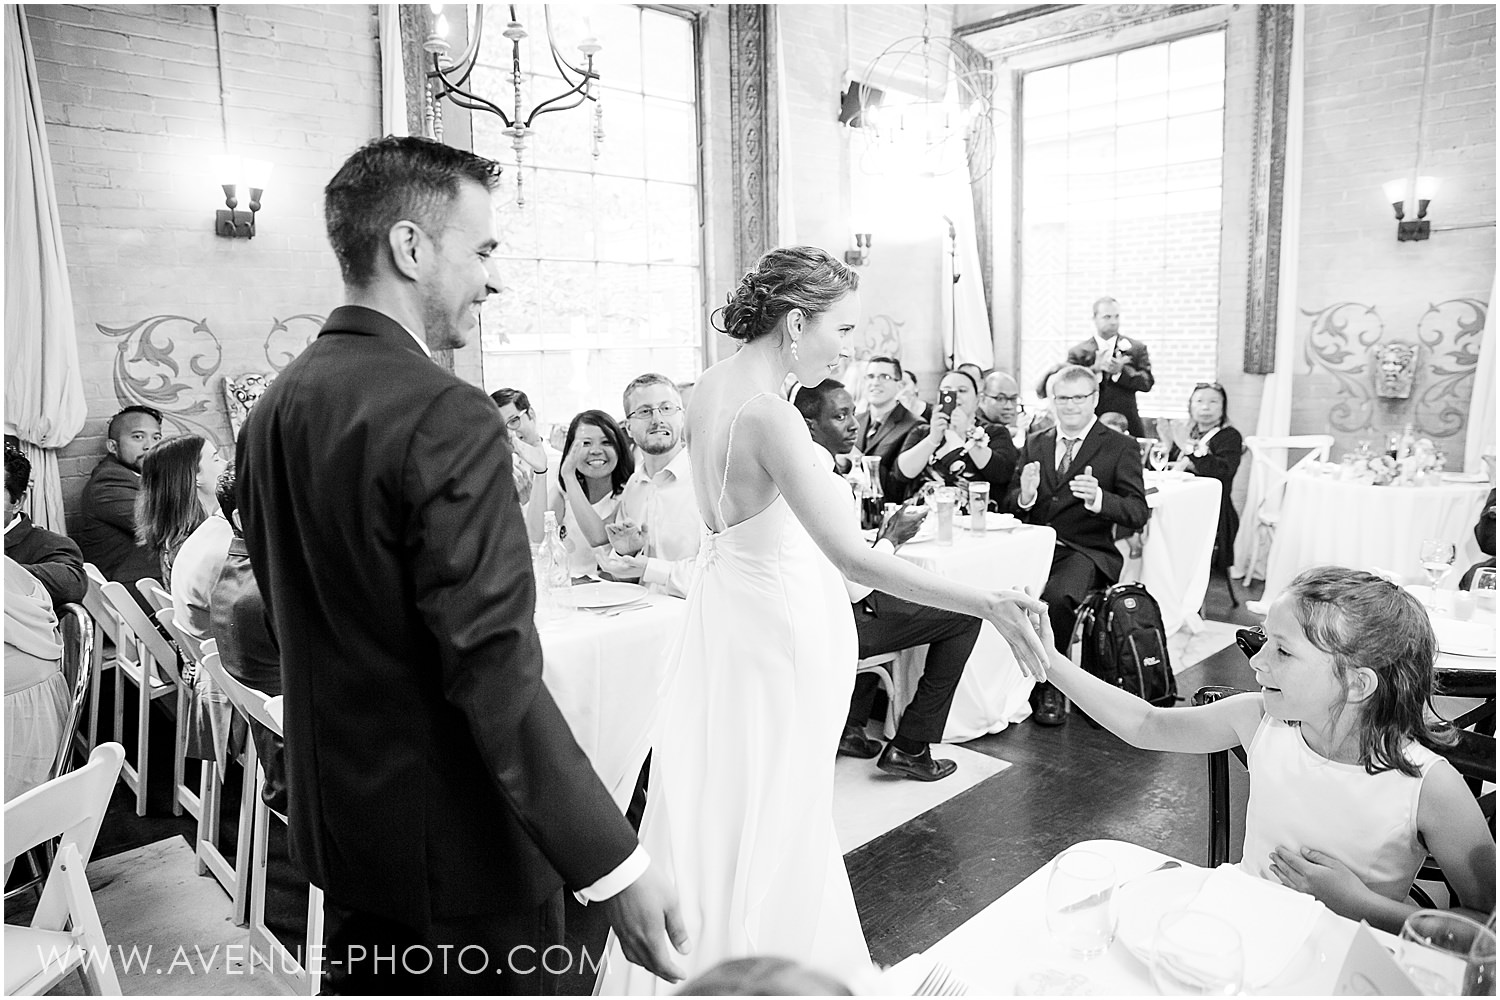 Caffino Wedding Photos, Caffino Ristorante, Liberty Village Wedding, Lamport Stadium, Avenue Photo, Toronto Wedding Photographer